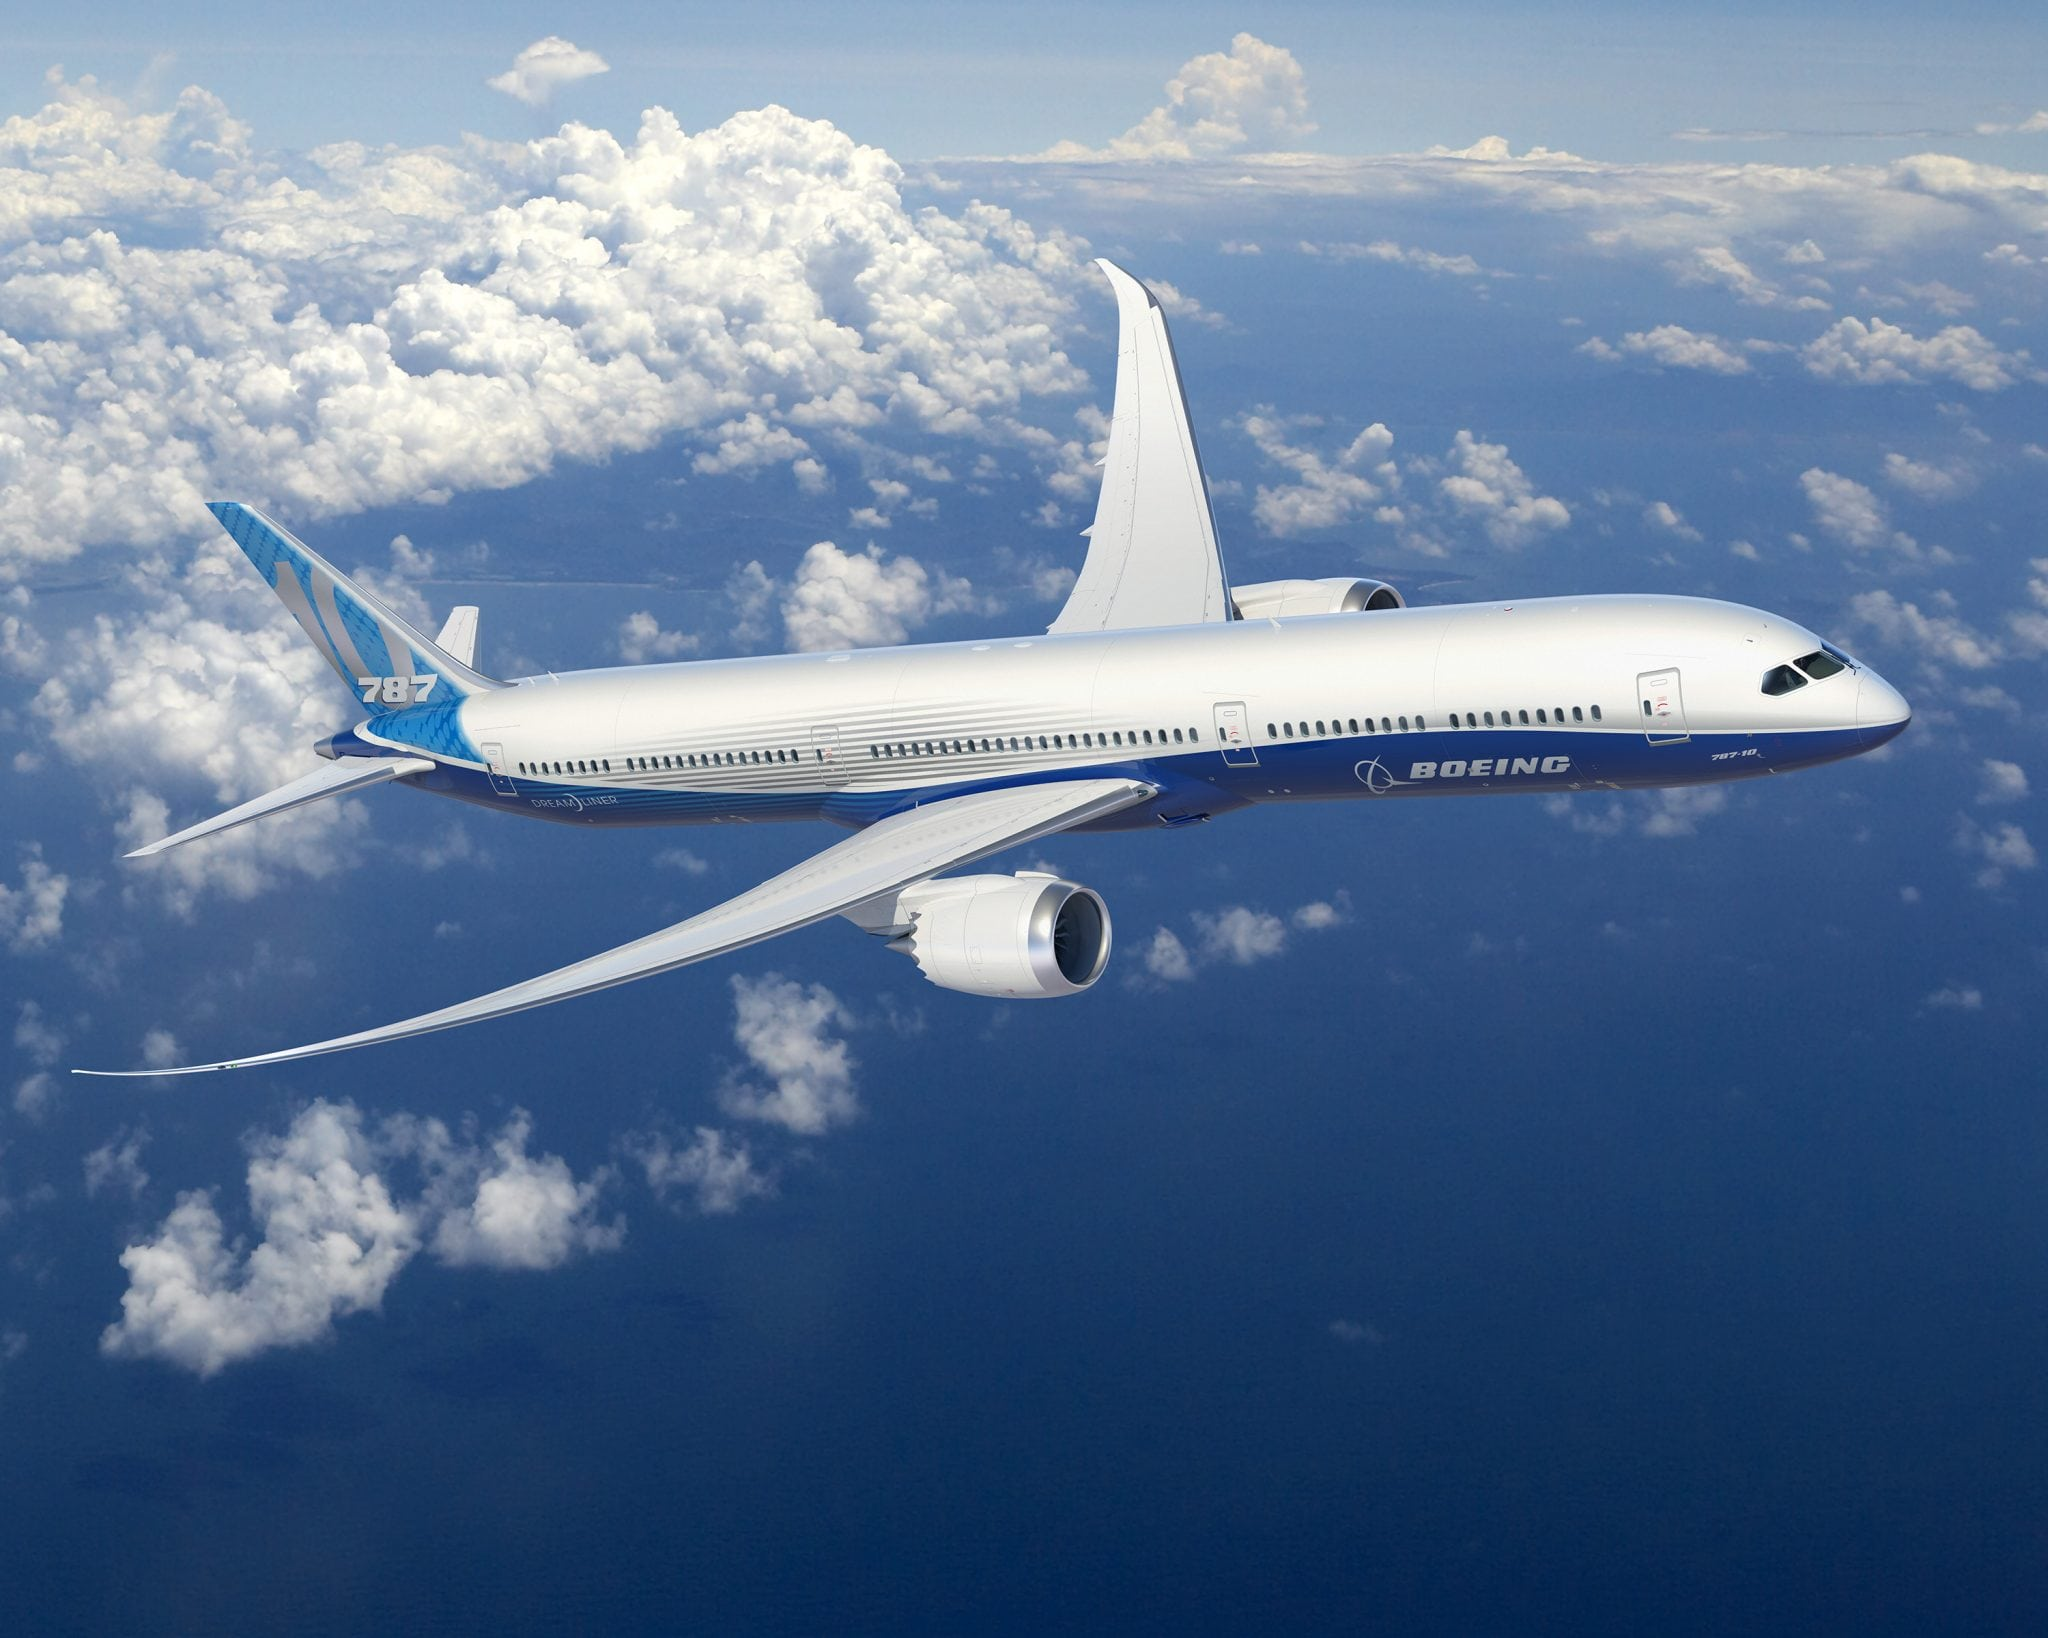 Boeing has completed detailed design for its new iteration of the Dreamliner